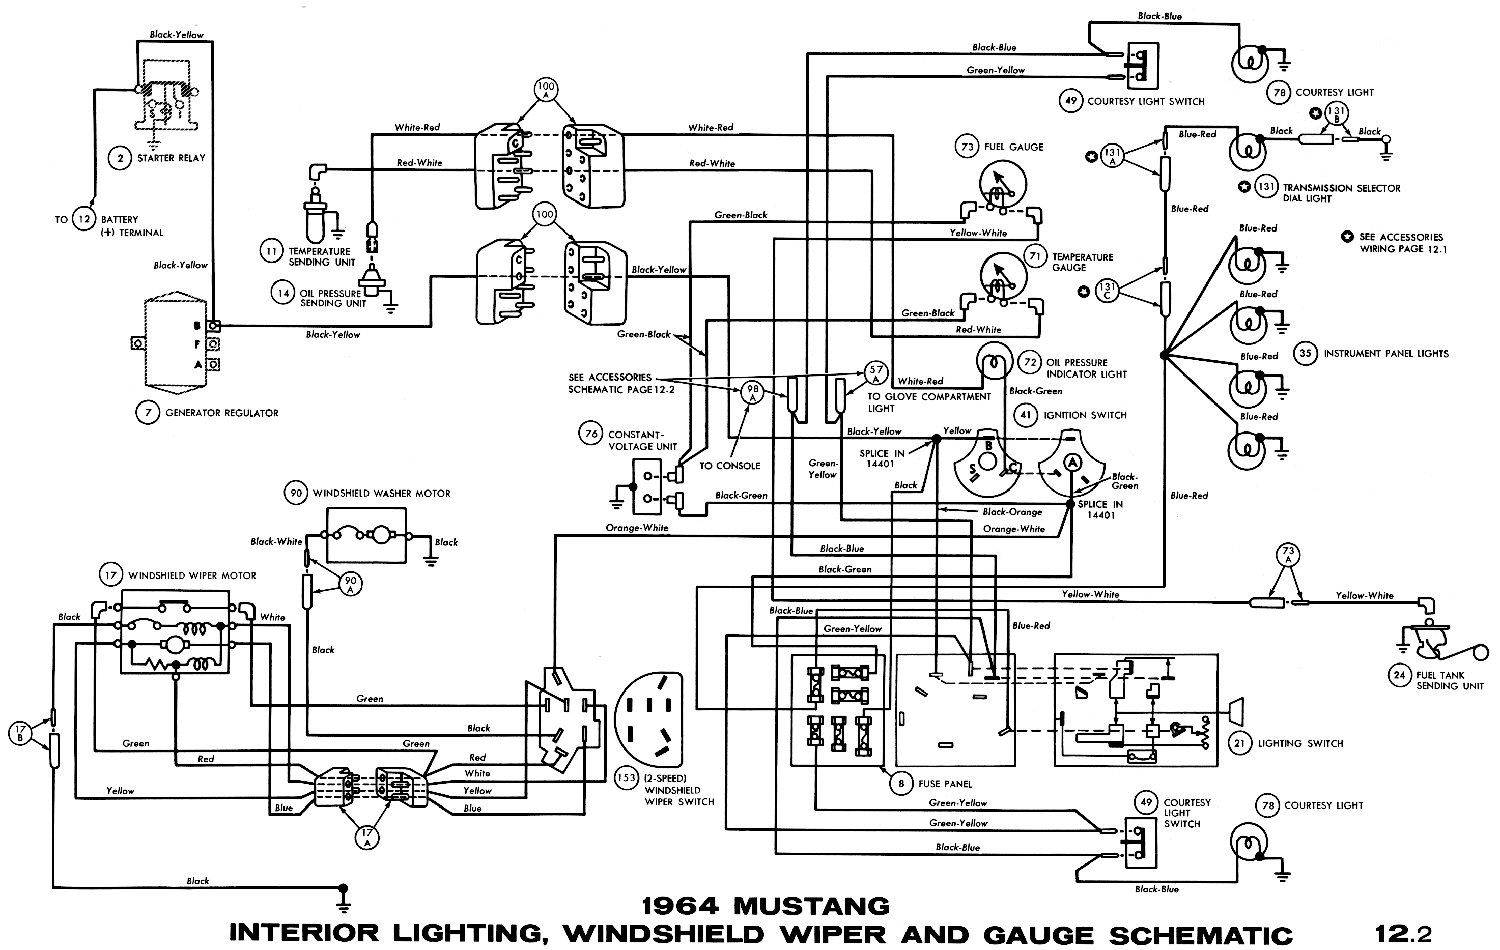 1964k el ritningar! 1966 mustang neutral safety switch wiring diagram at edmiracle.co